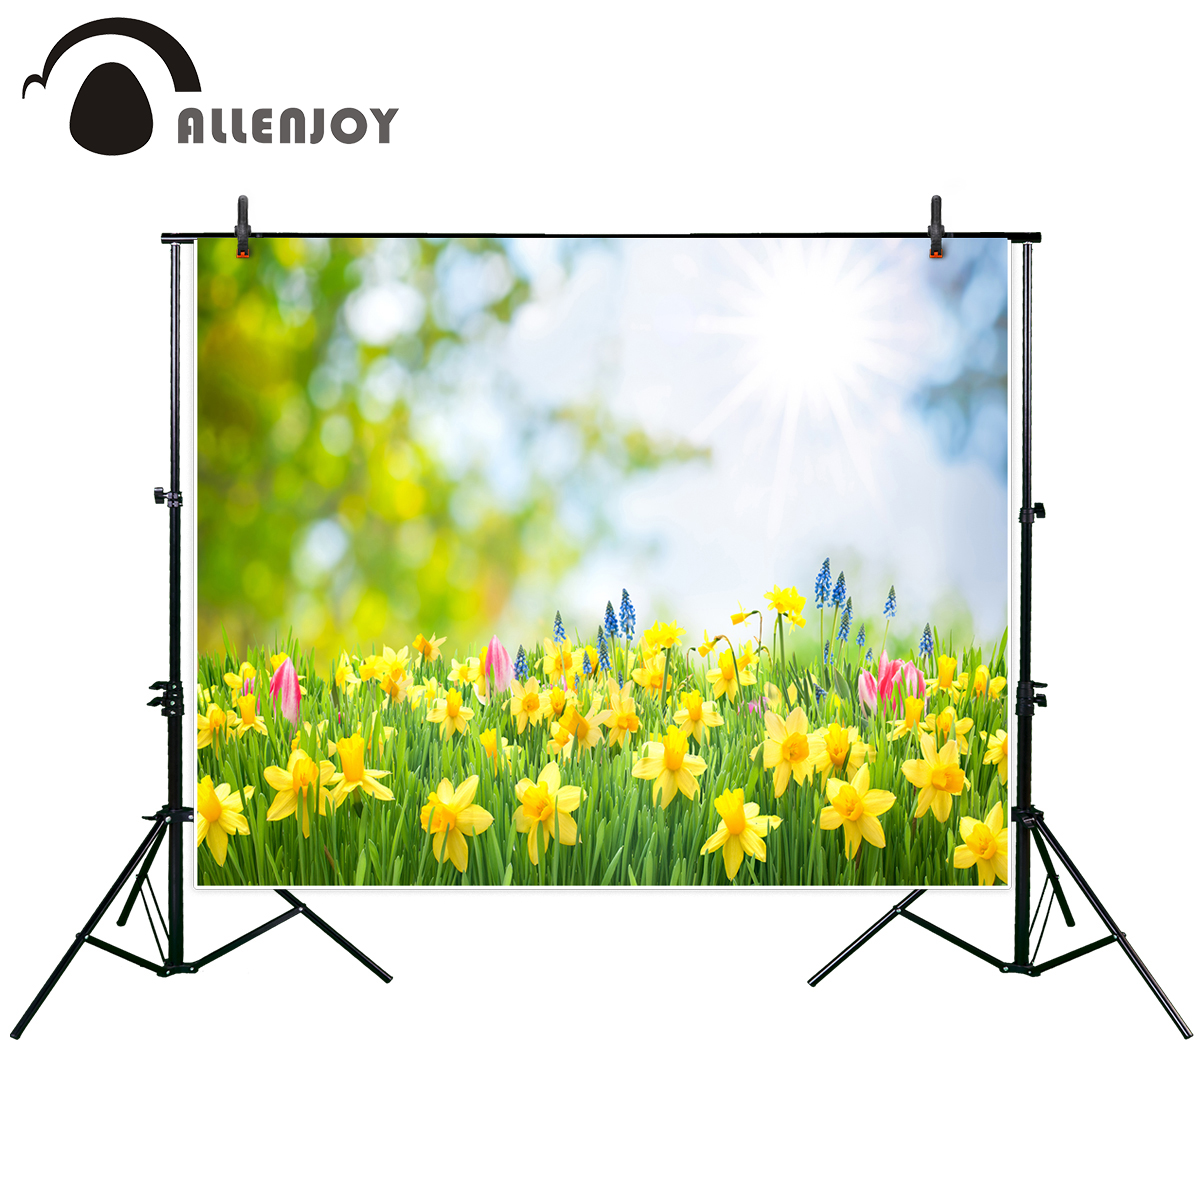 Allenjoy photography background Spring Easter background beautiful yellow daffodils professional festival backdrop photograph